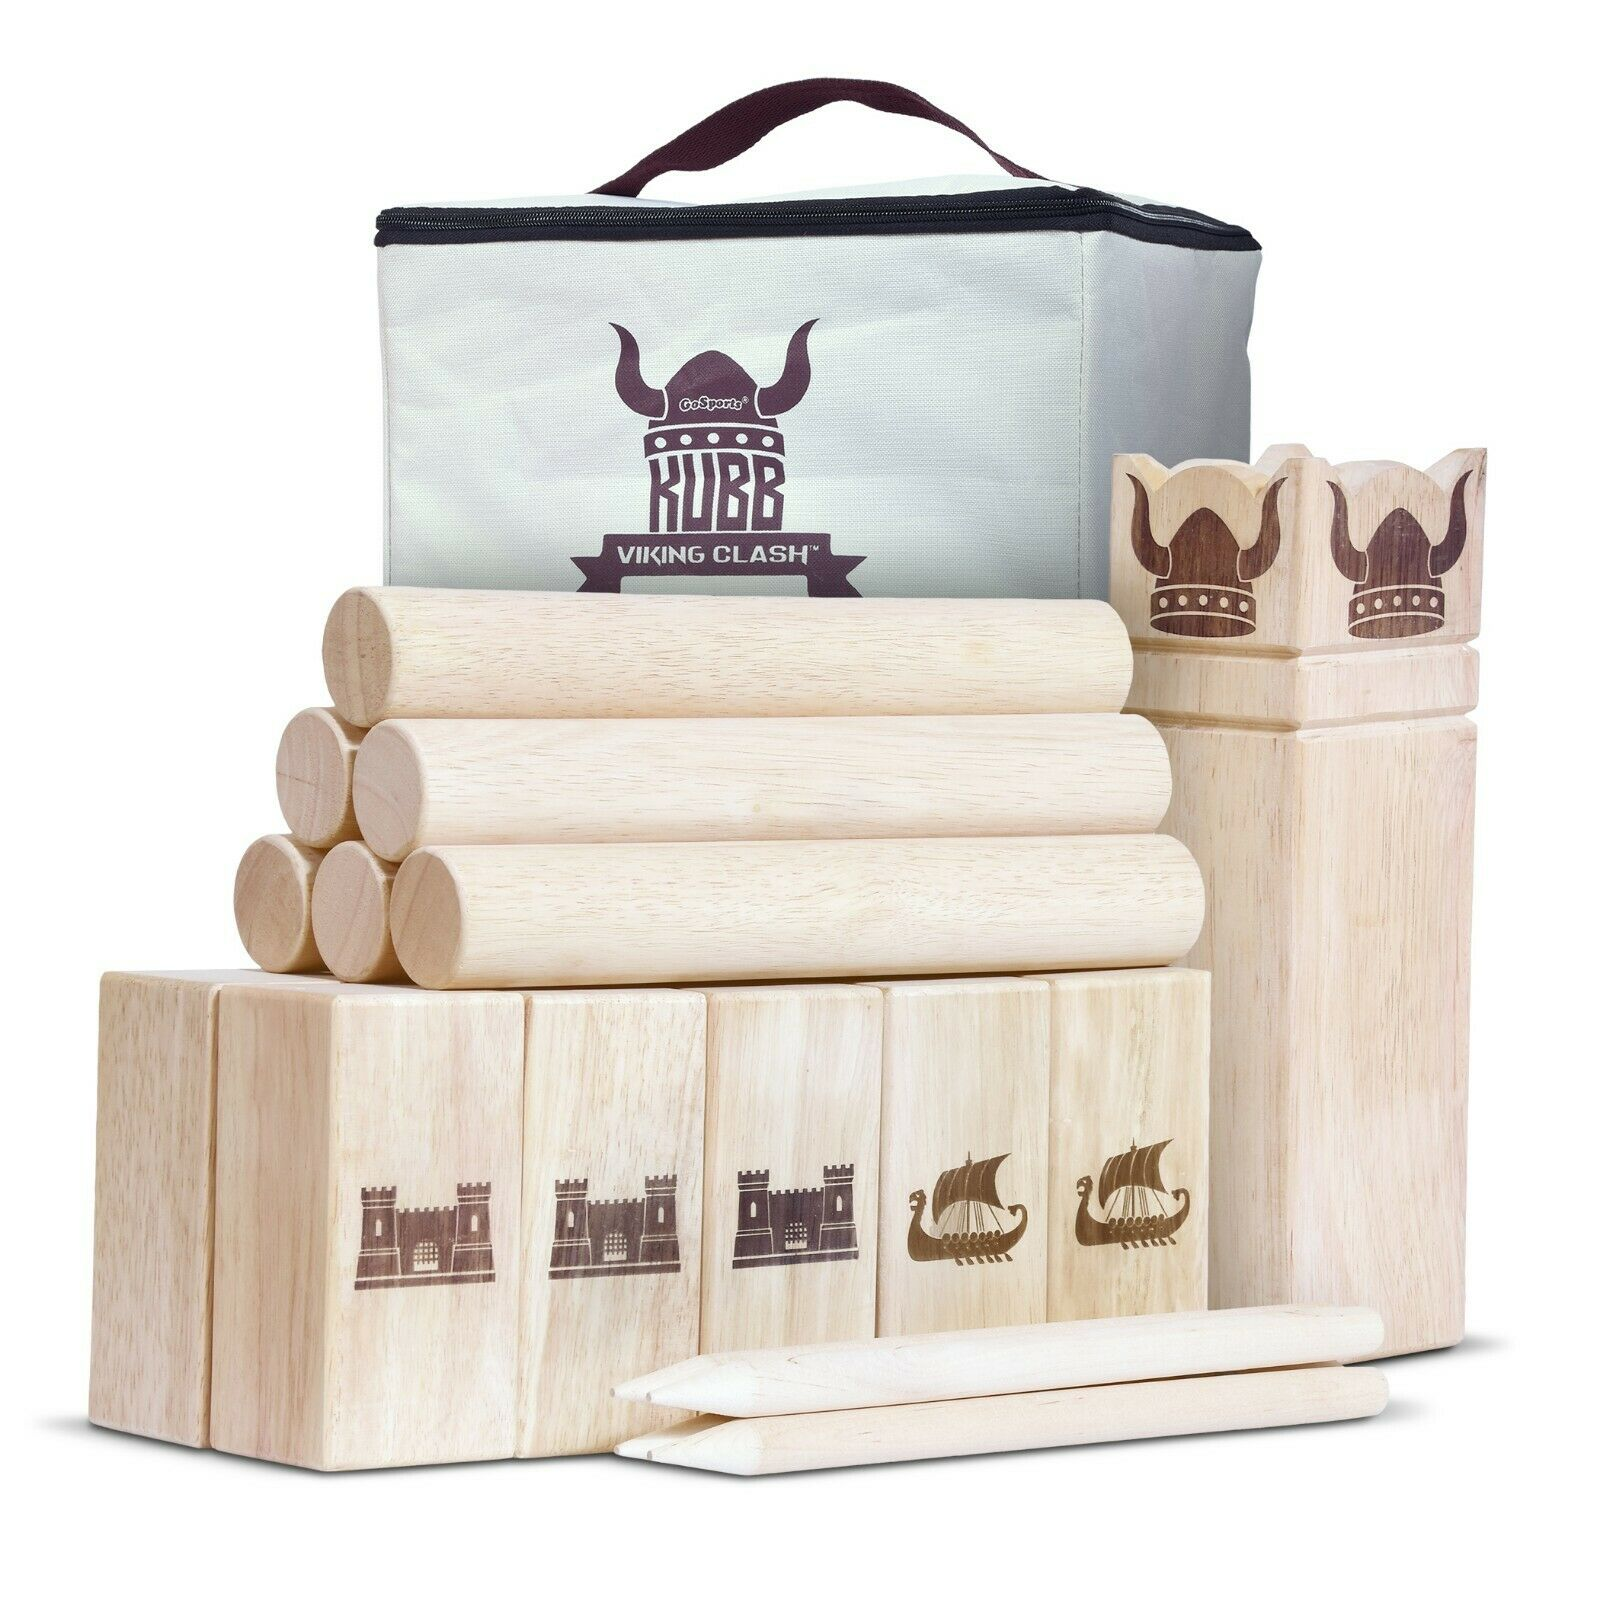 GoSports Regulation Size Kubb   Viking Clash Toss Game Set   Bonus Carry Case